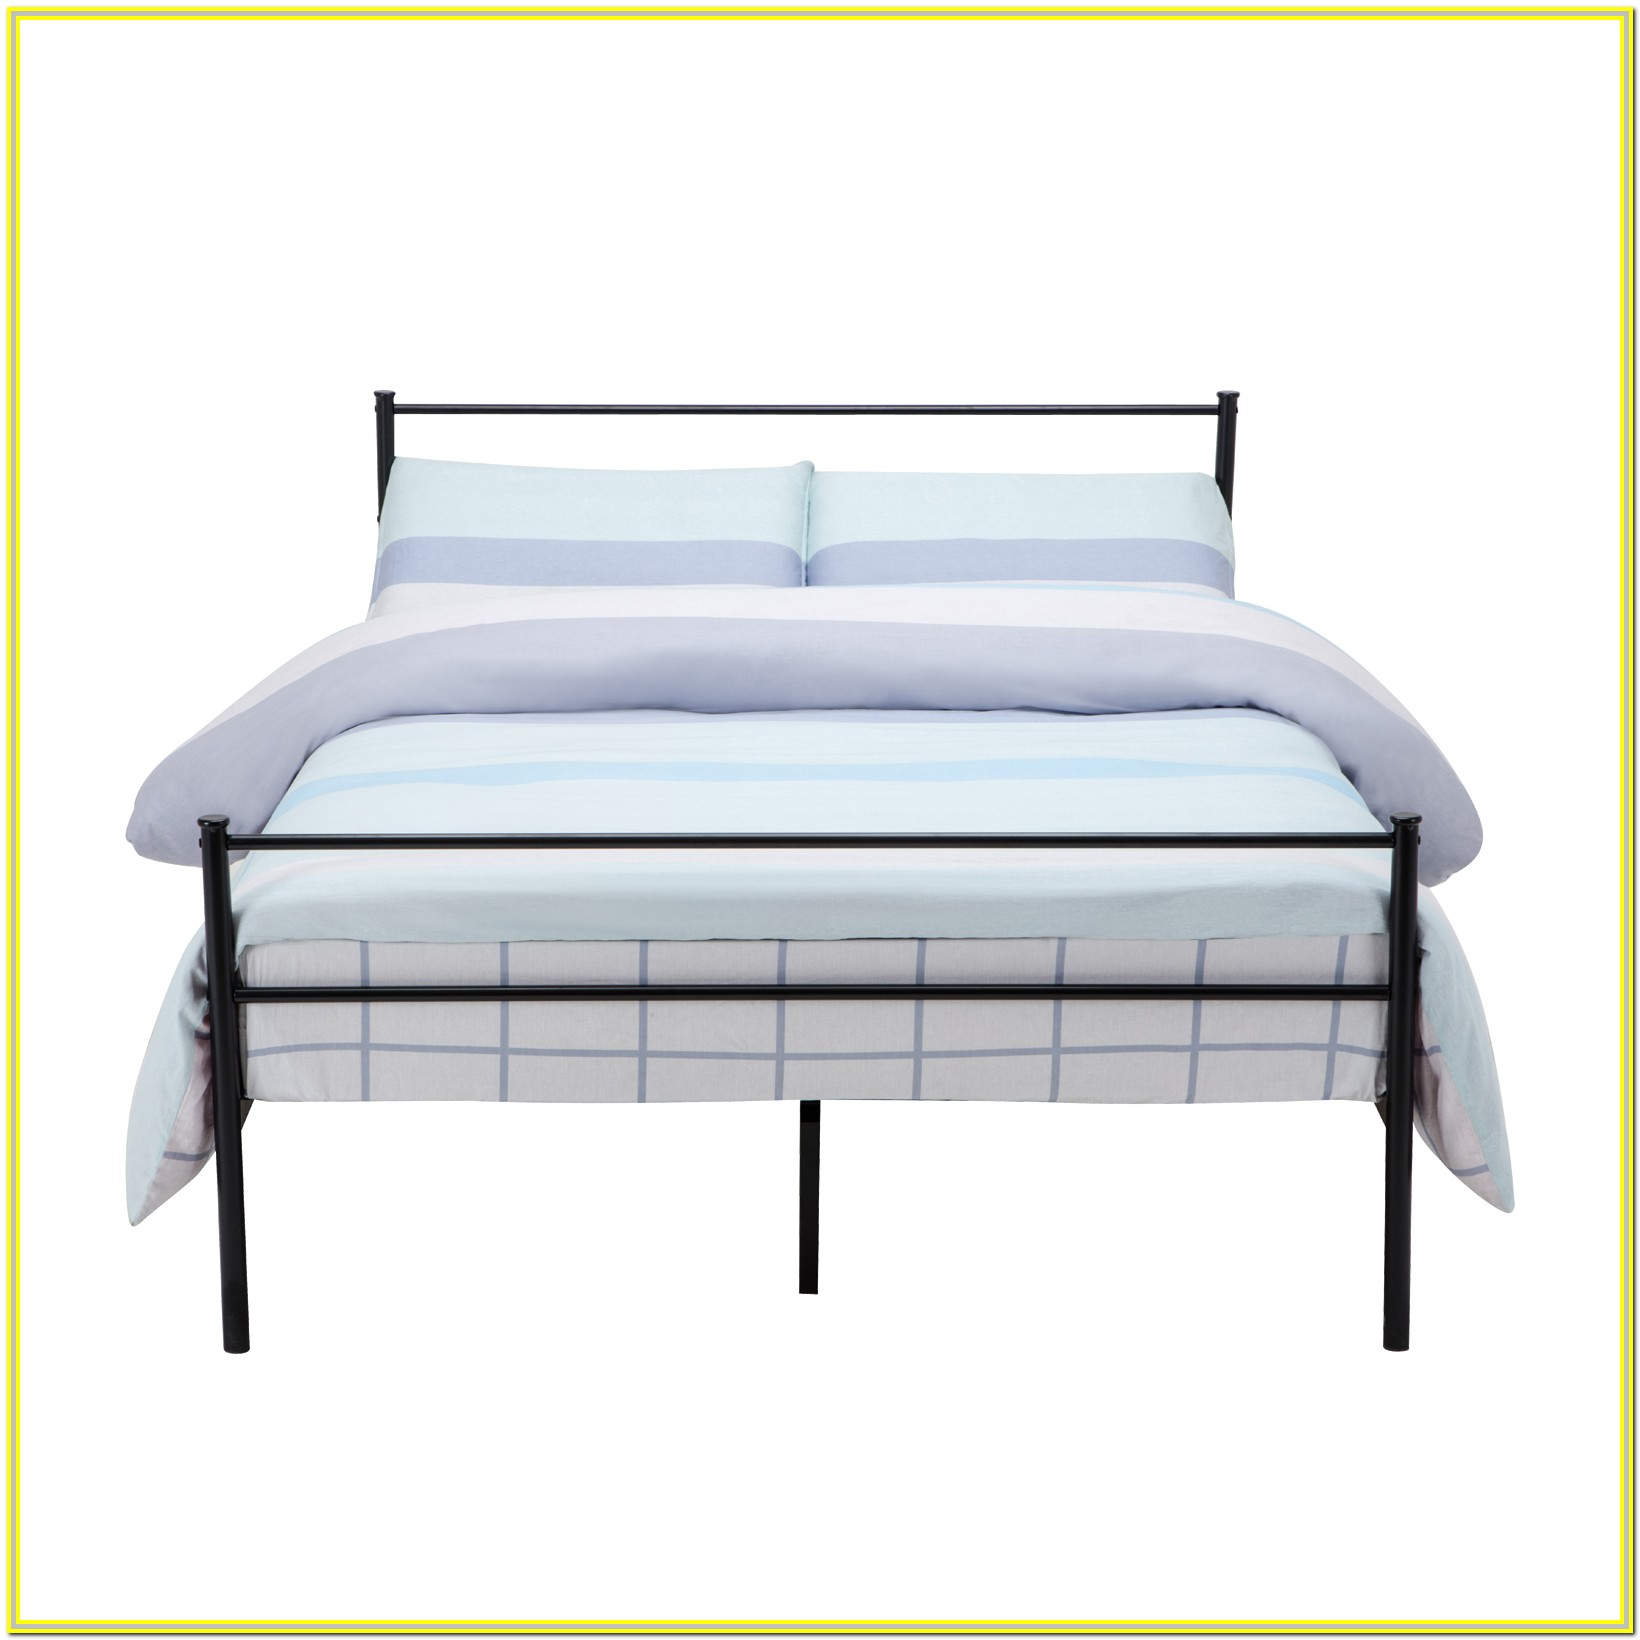 Bed Frames And Headboards Full Size